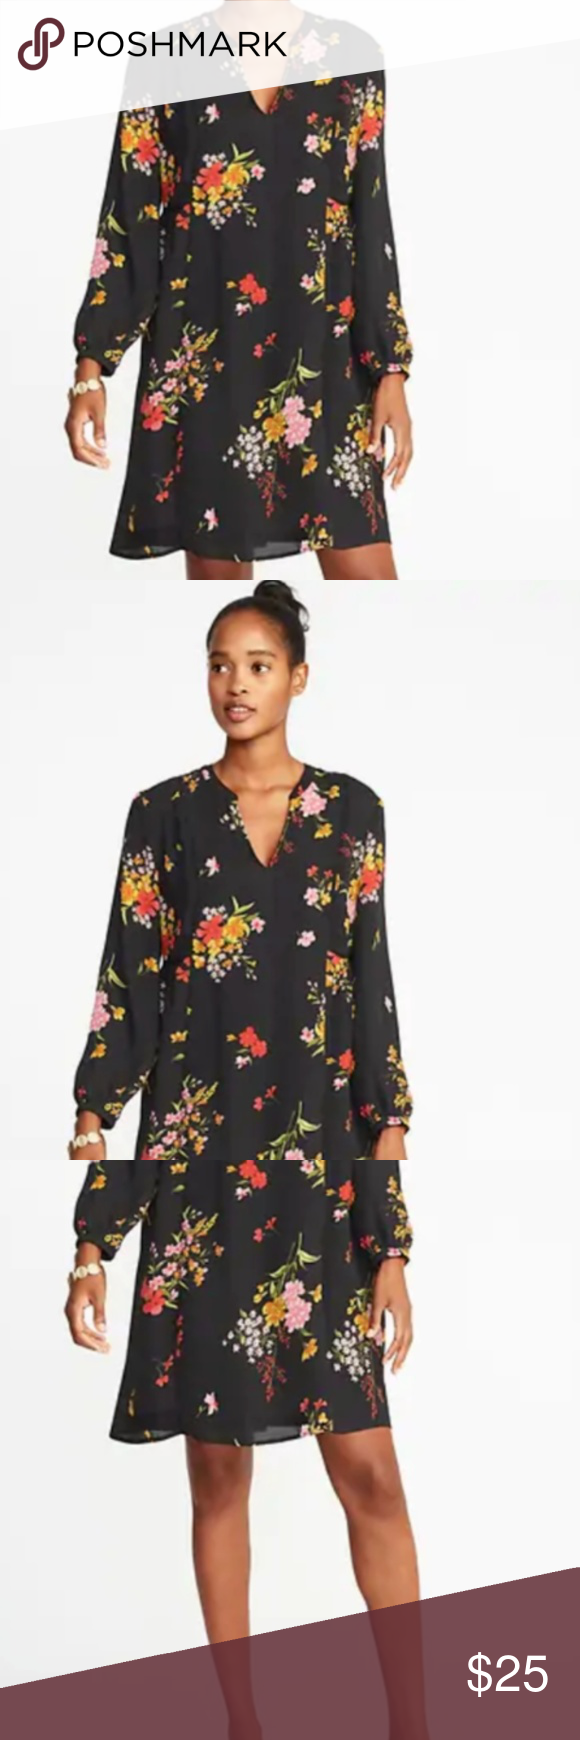 ee2fd1318a2 Floral-Print Georgette Swing Dress for Women elaxed through the body with a  flared hem that swings out. Dress hits mid-thigh. Model is approximately  5 9